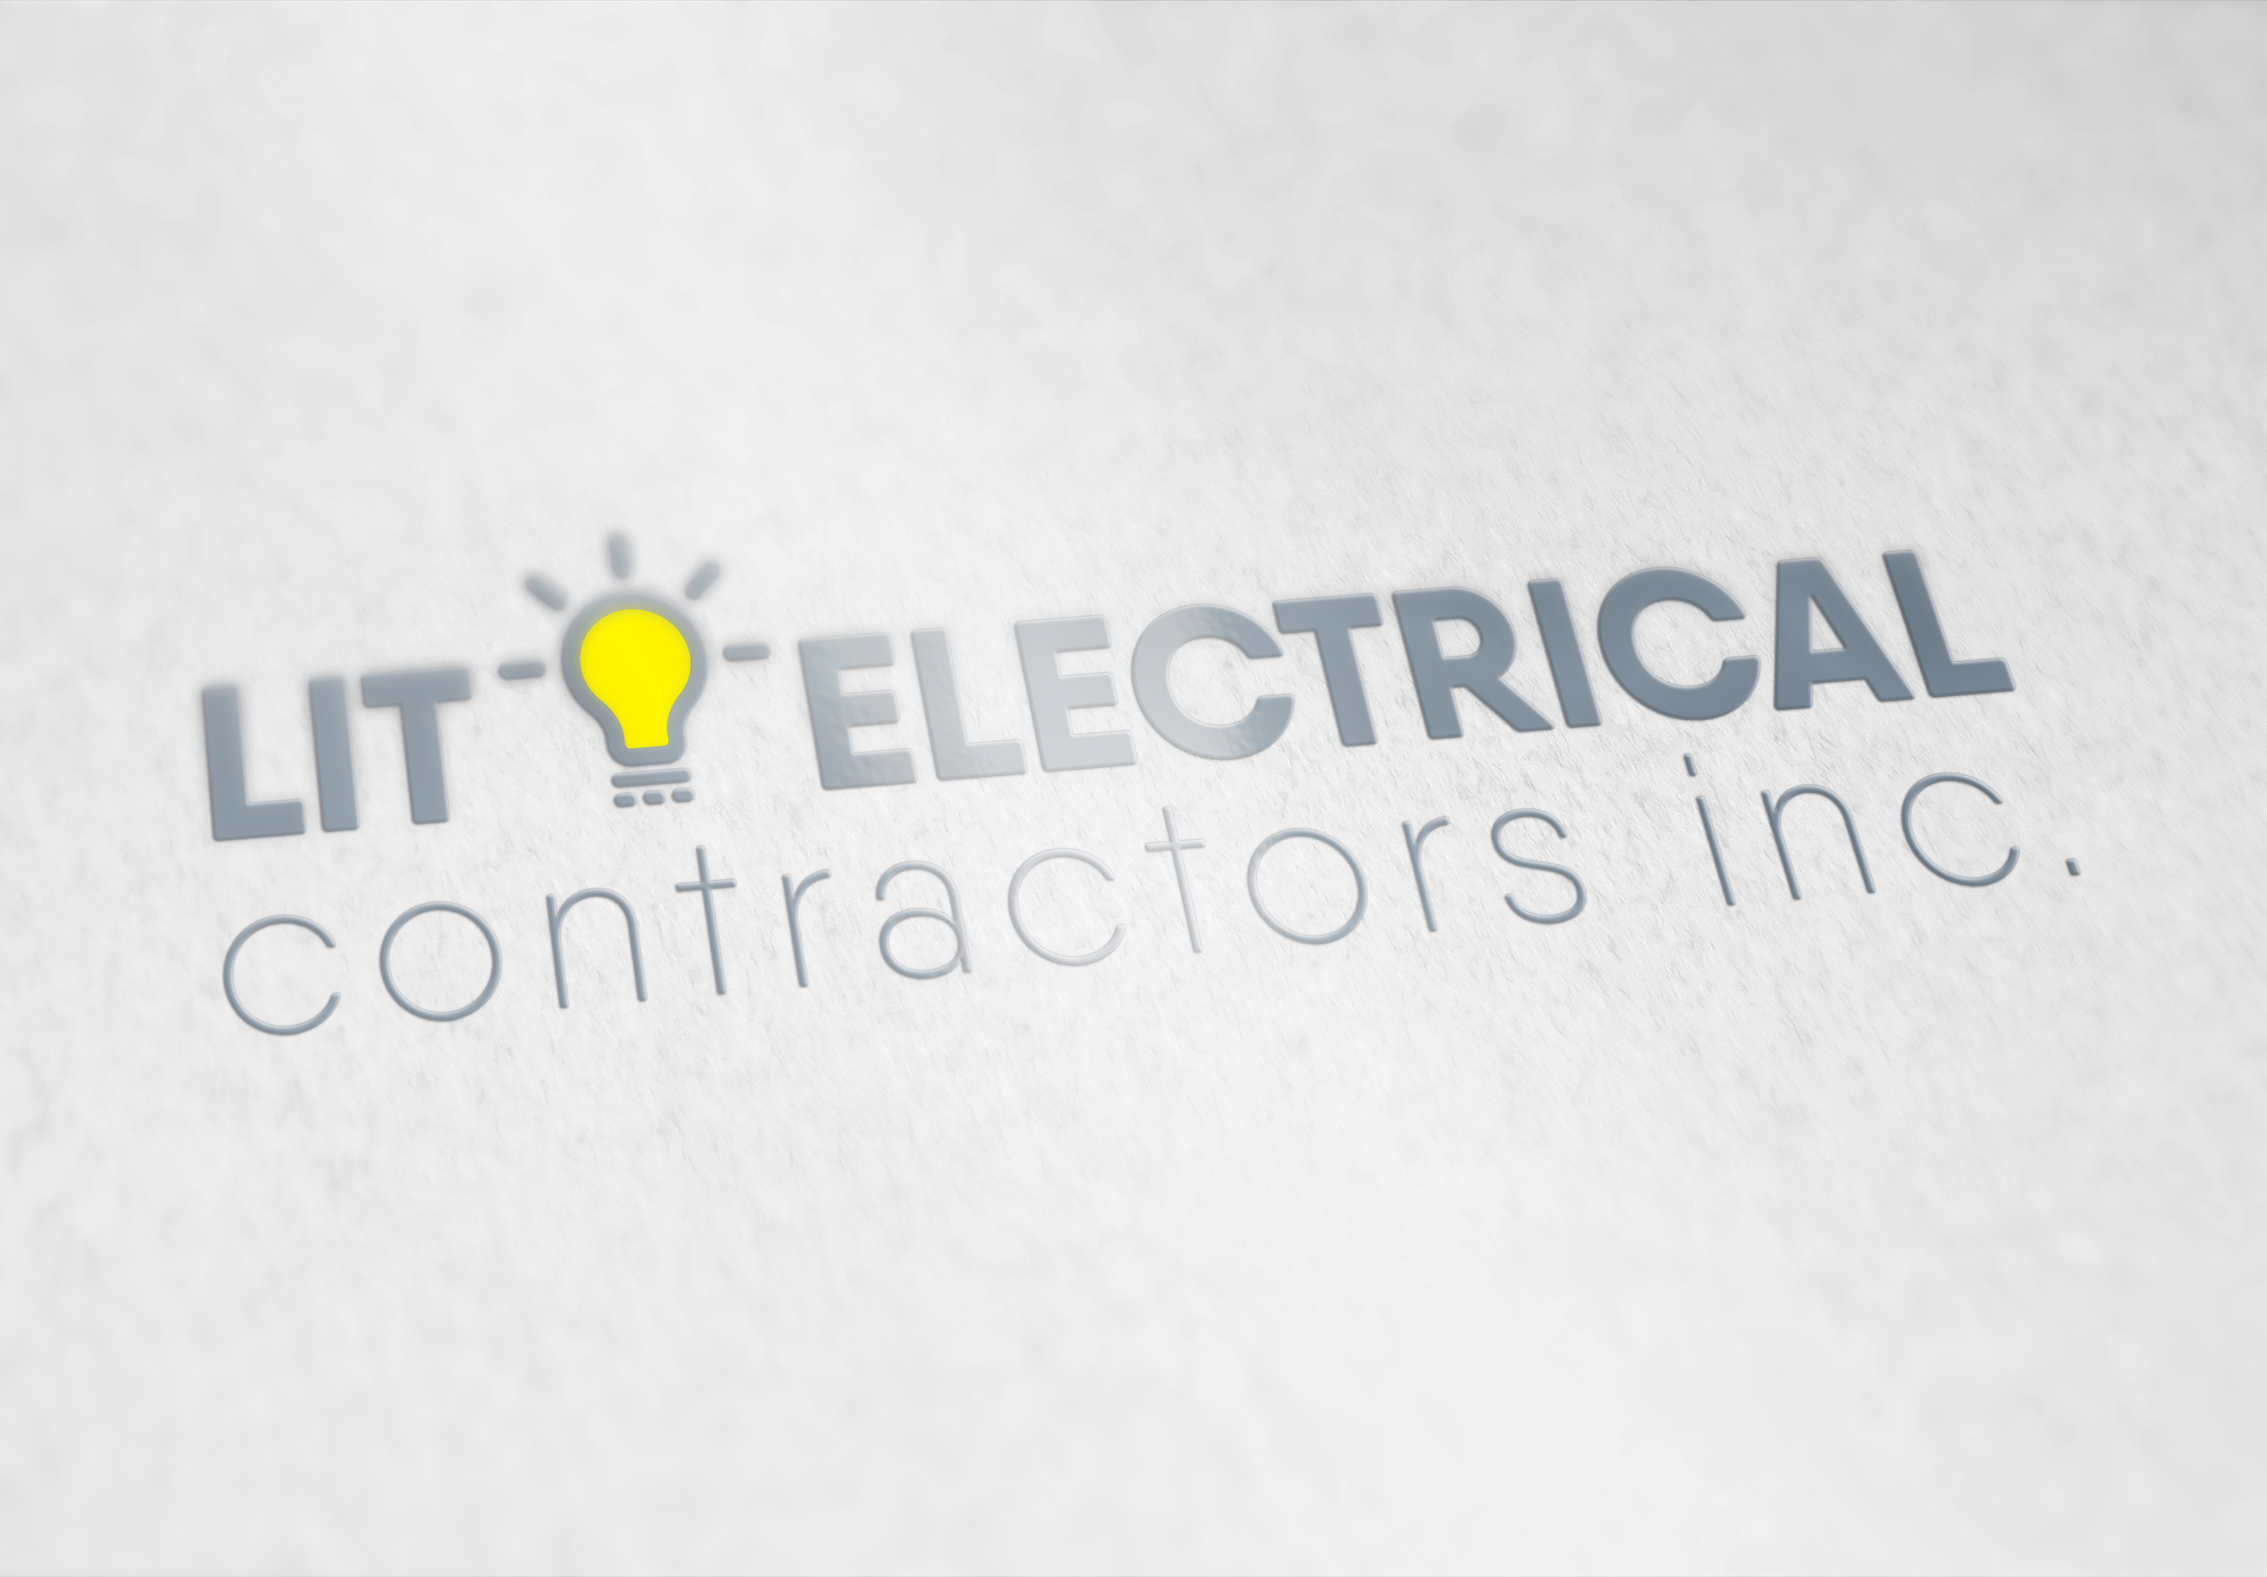 LIT Electrical Contractors Inc.